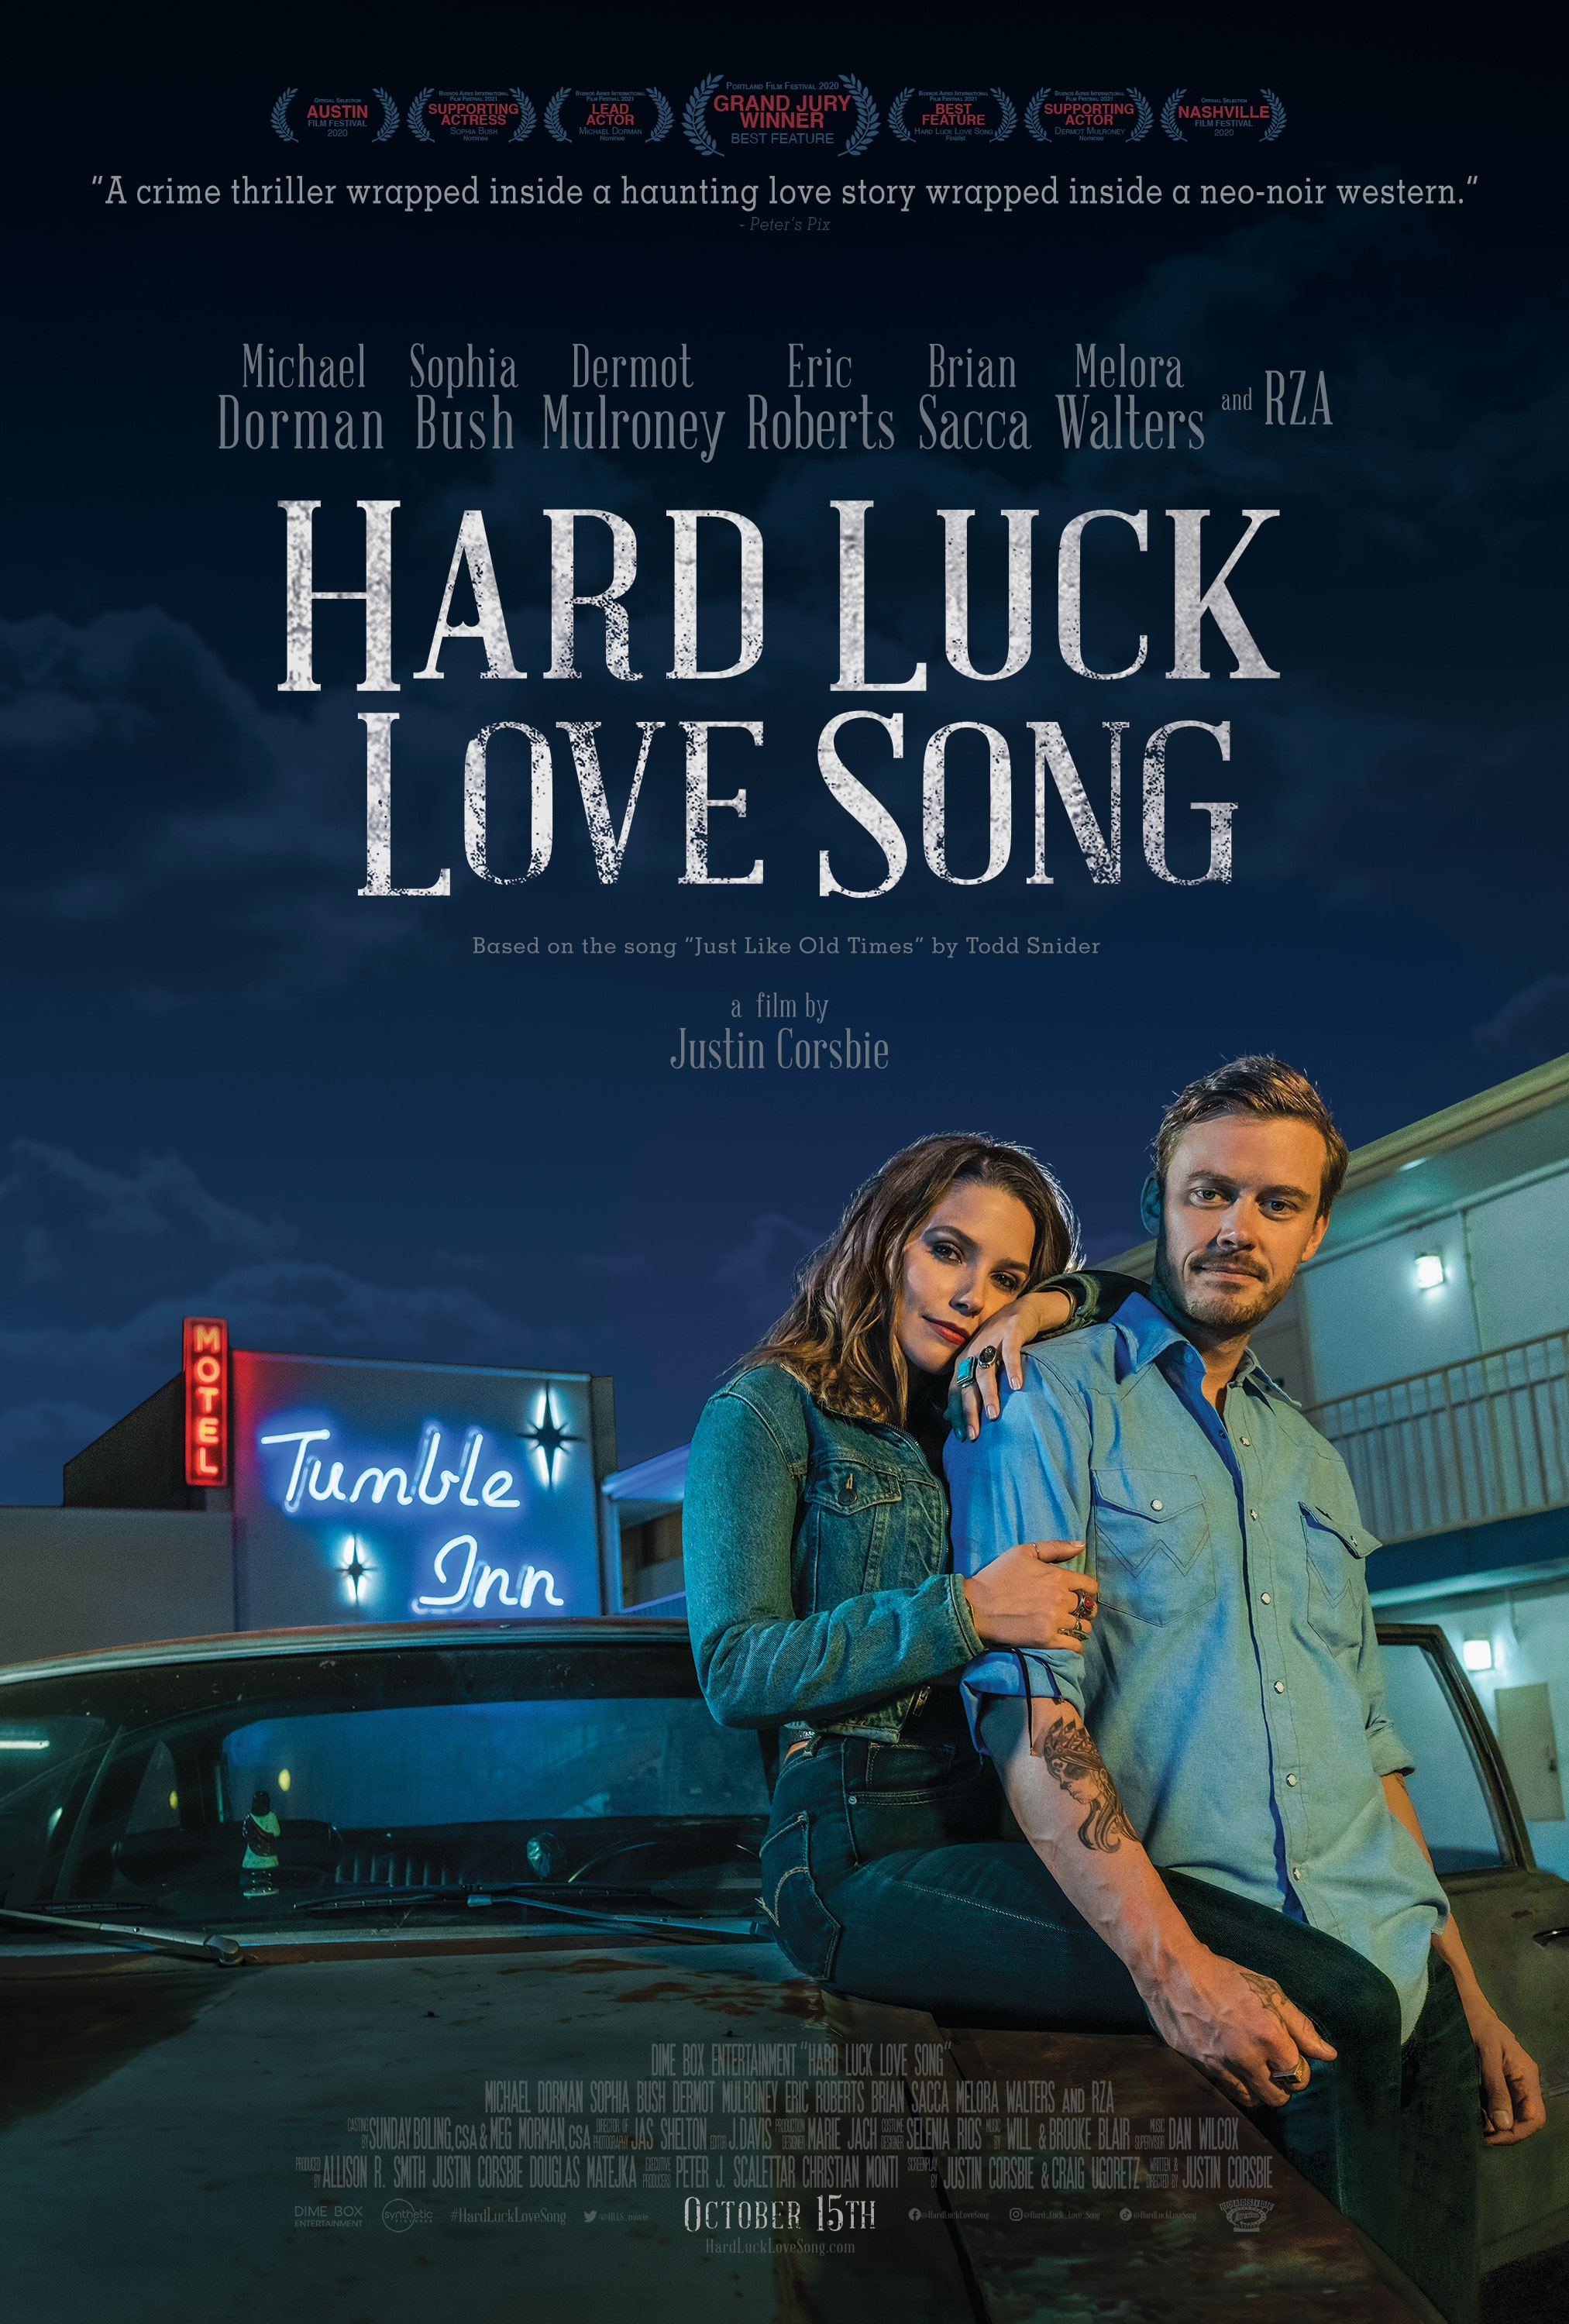 Image of the Hard Luck Love Song gallery